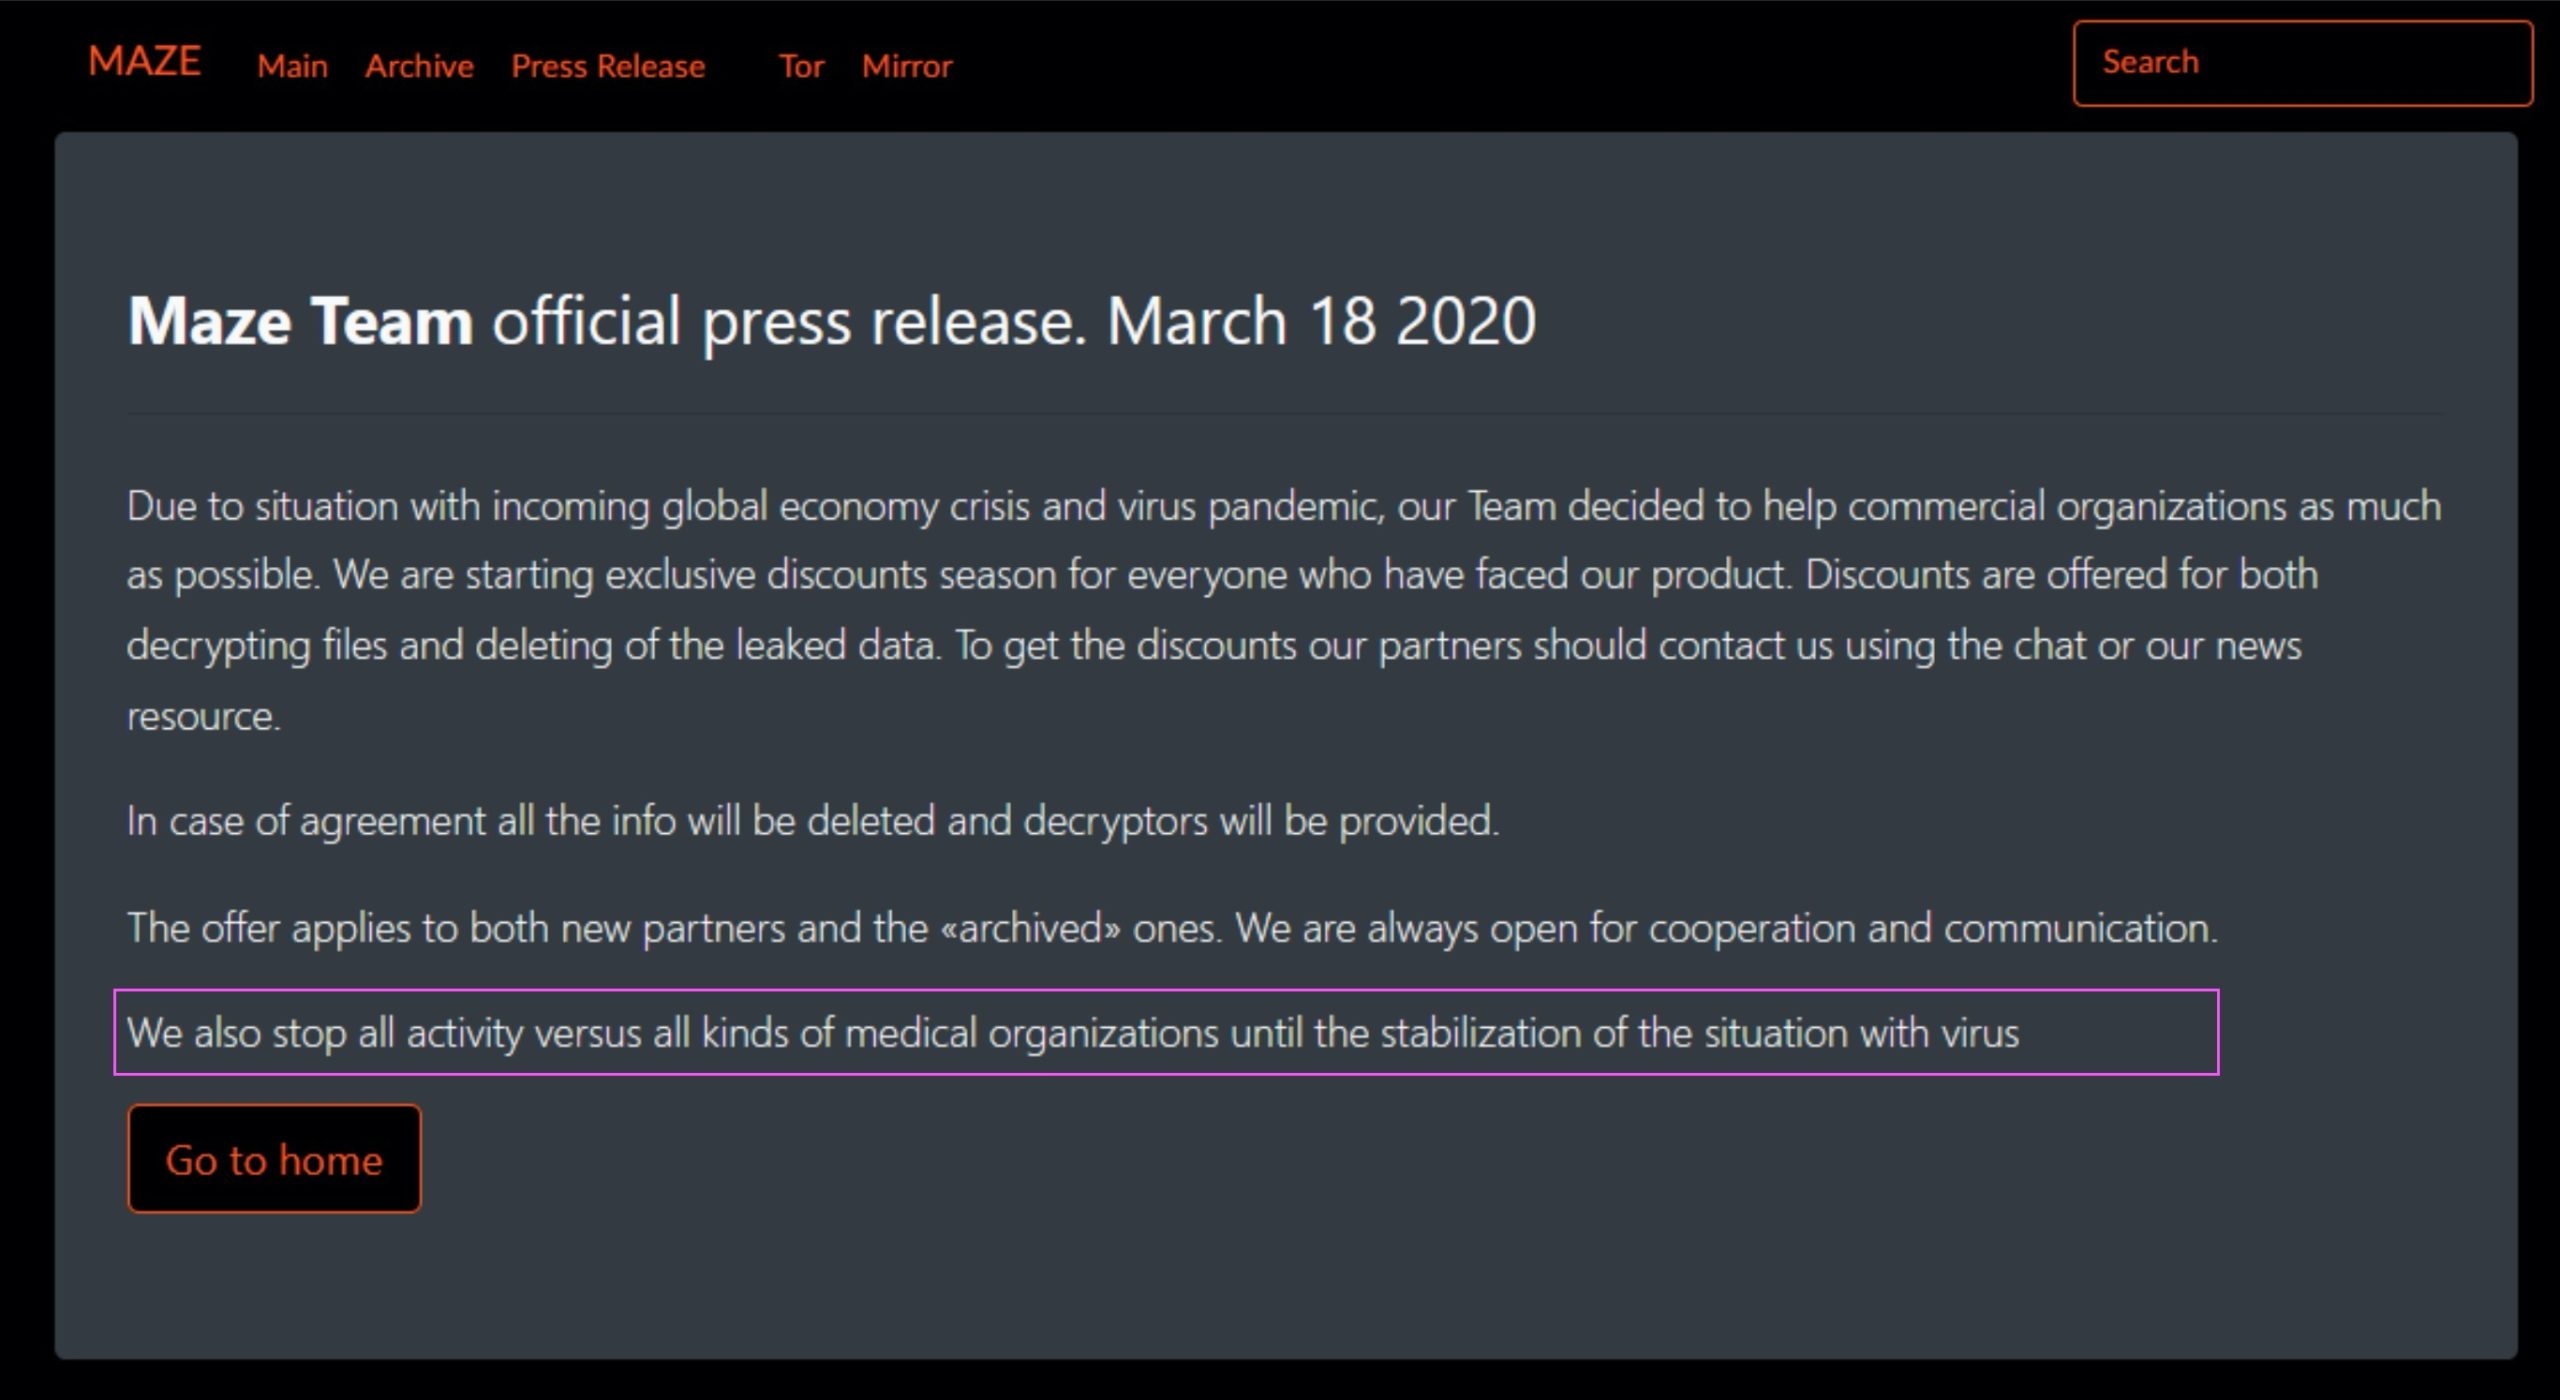 image of Maze ransomware press release